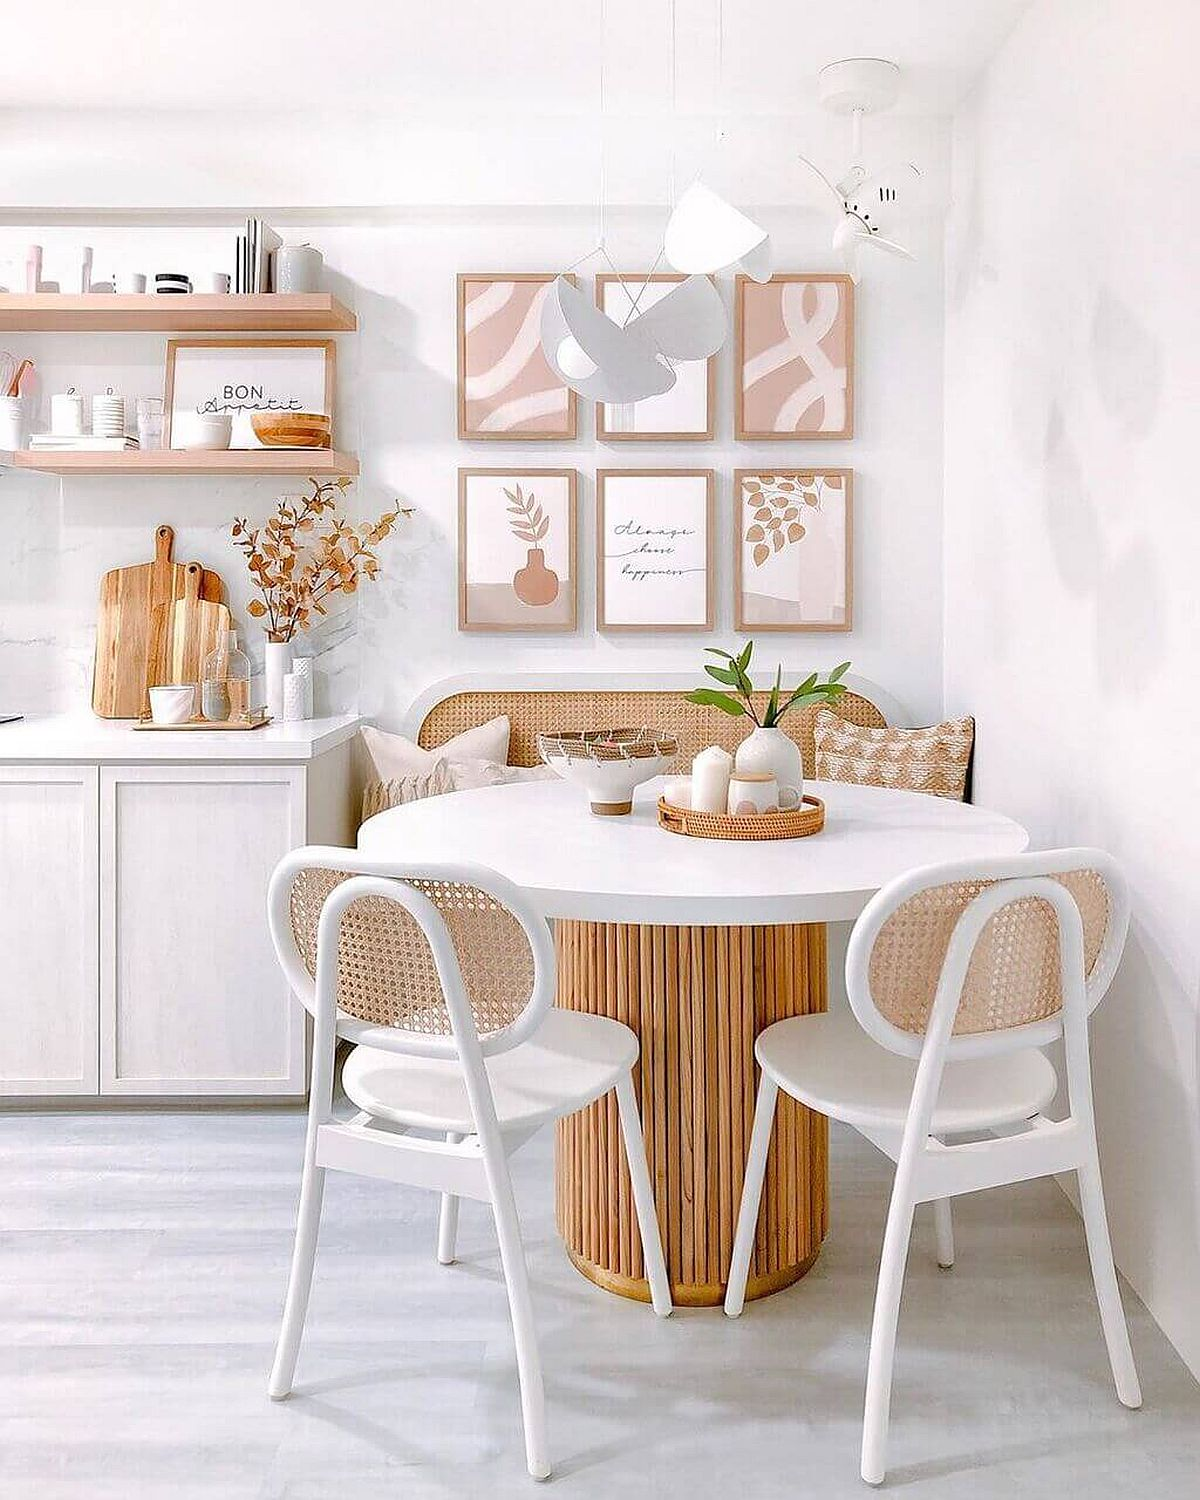 Picture-perfect-whie-and-wood-dining-room-with-a-round-dining-table-and-pastel-accents-13844